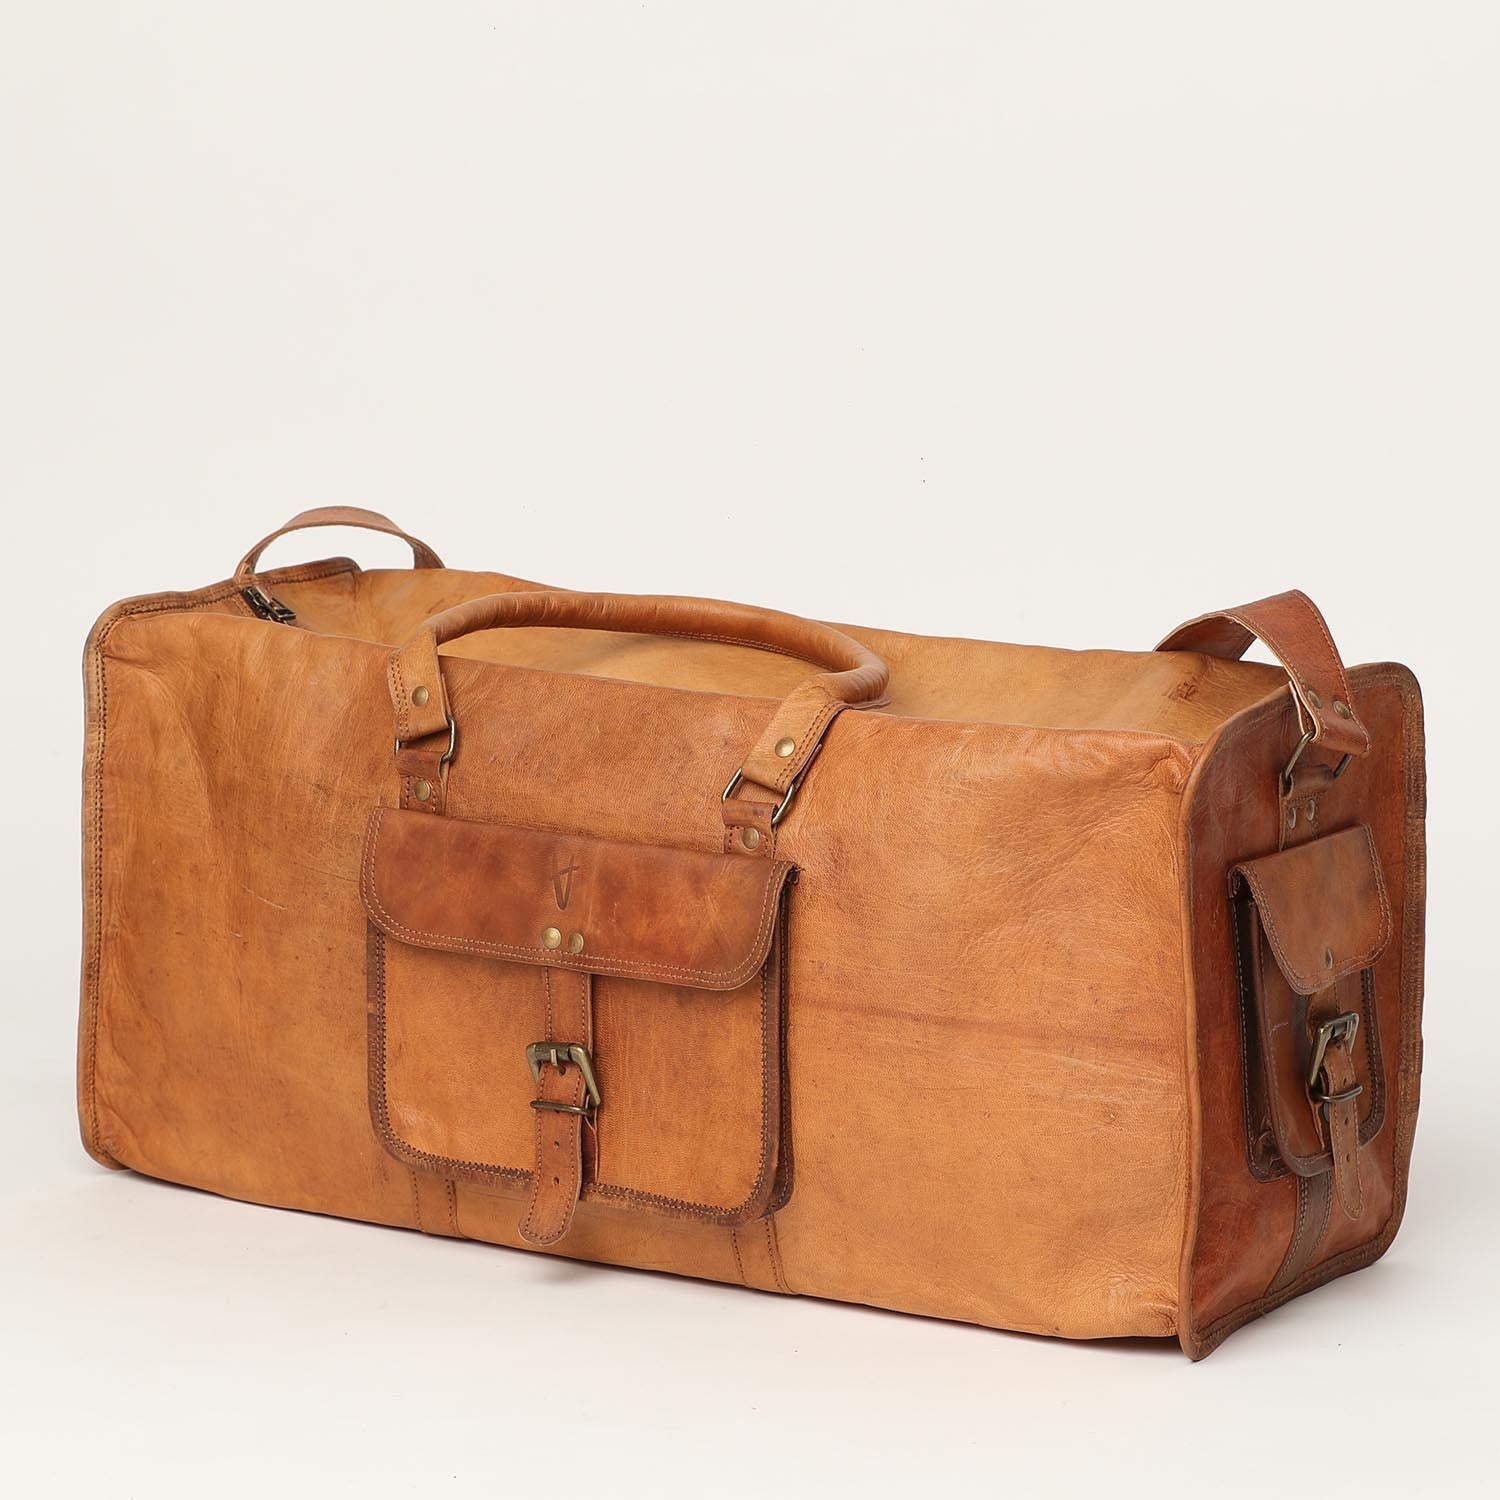 Travelling Bag Rectangle - leather bags